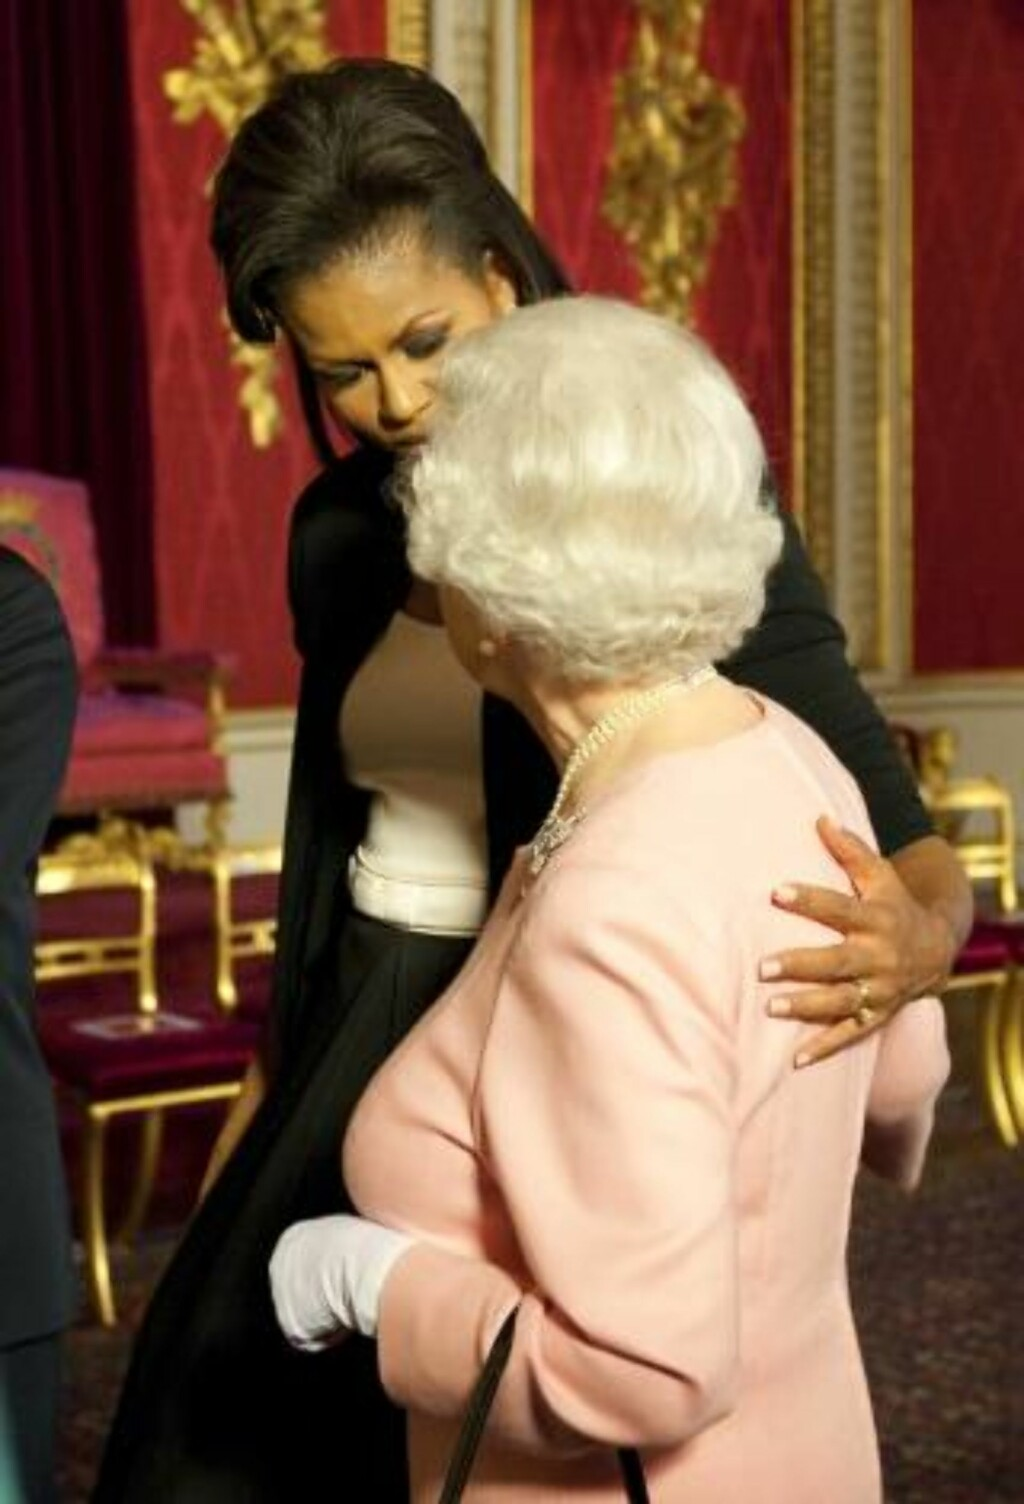 NÆR STUND: Michelle Obama og dronningn Elizabhet II under det mye omtalte møtet på Buckingham Palace. Foto: AP Photo/Daniel Hambury/SCANPIX